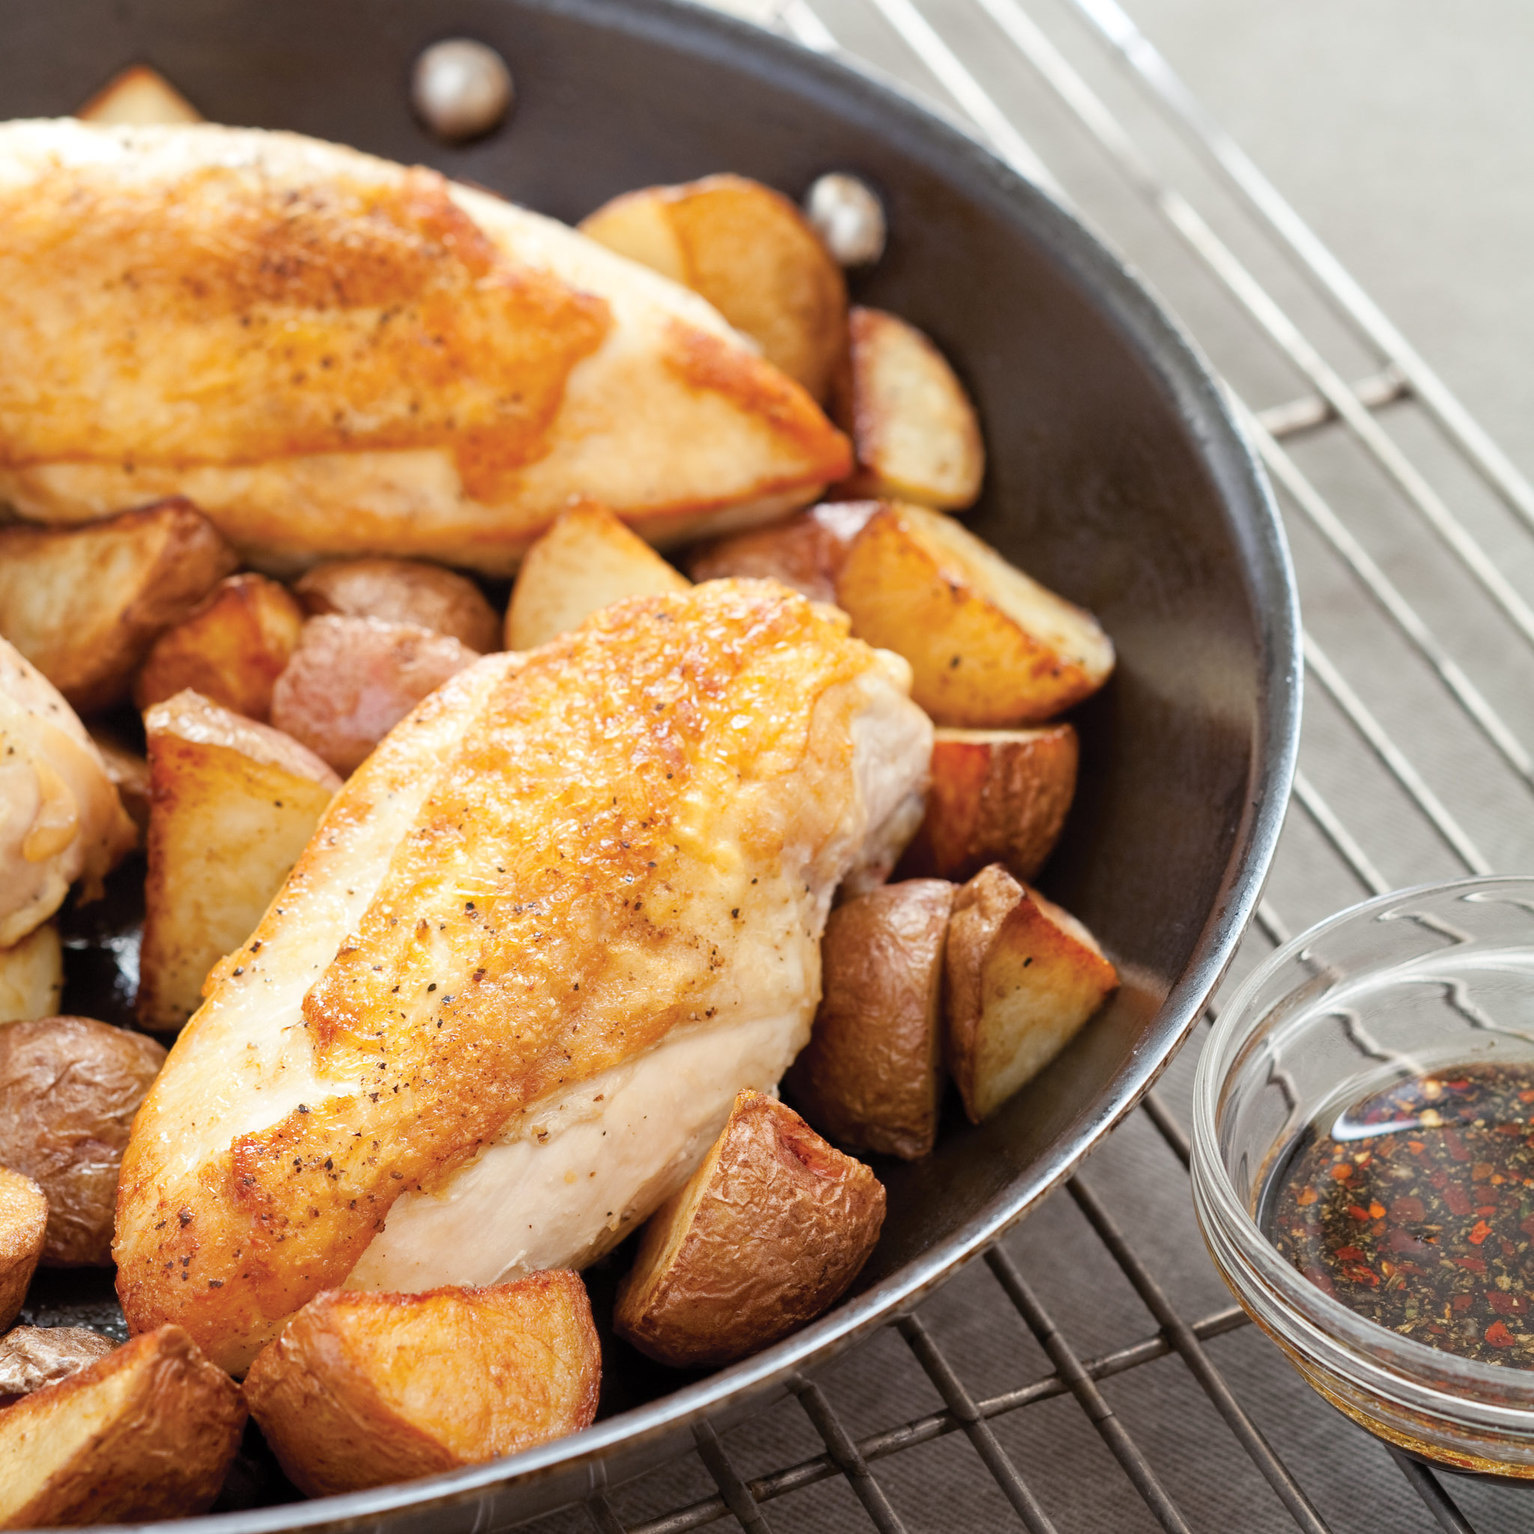 Pan-Roasted Chicken Breasts with Potatoes